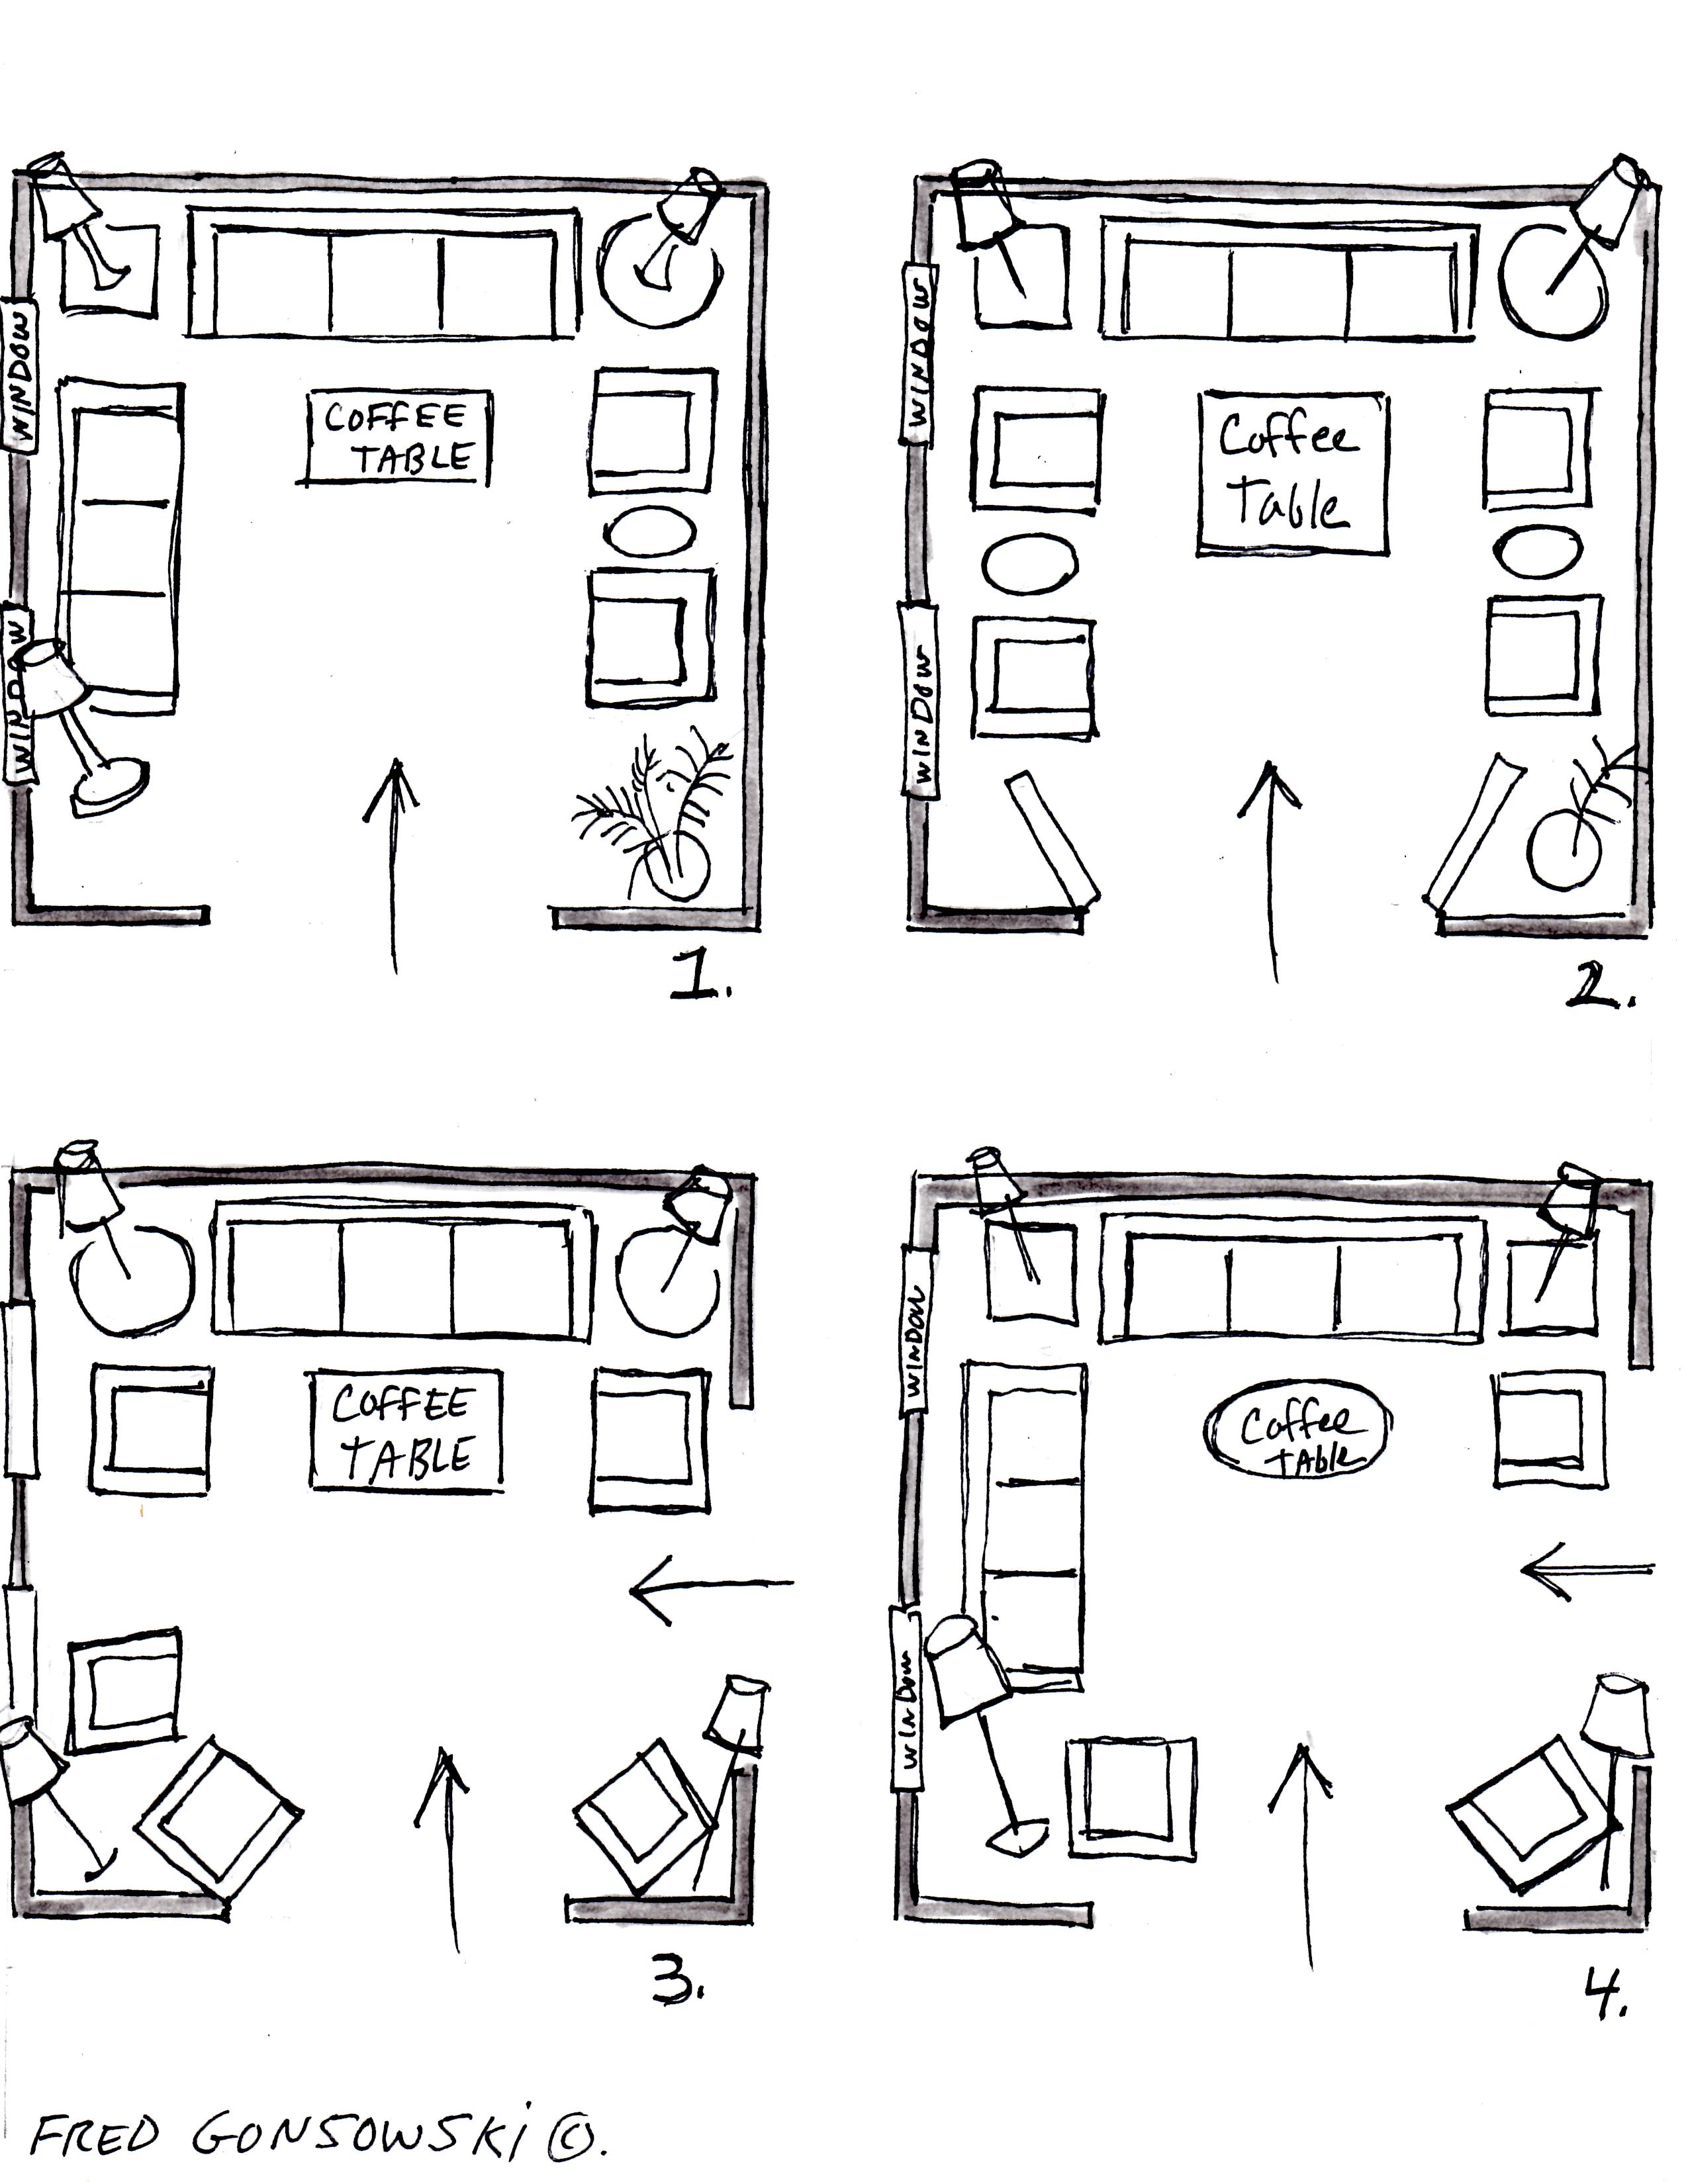 it's easy to arrange furniture in a square living room, some ideas